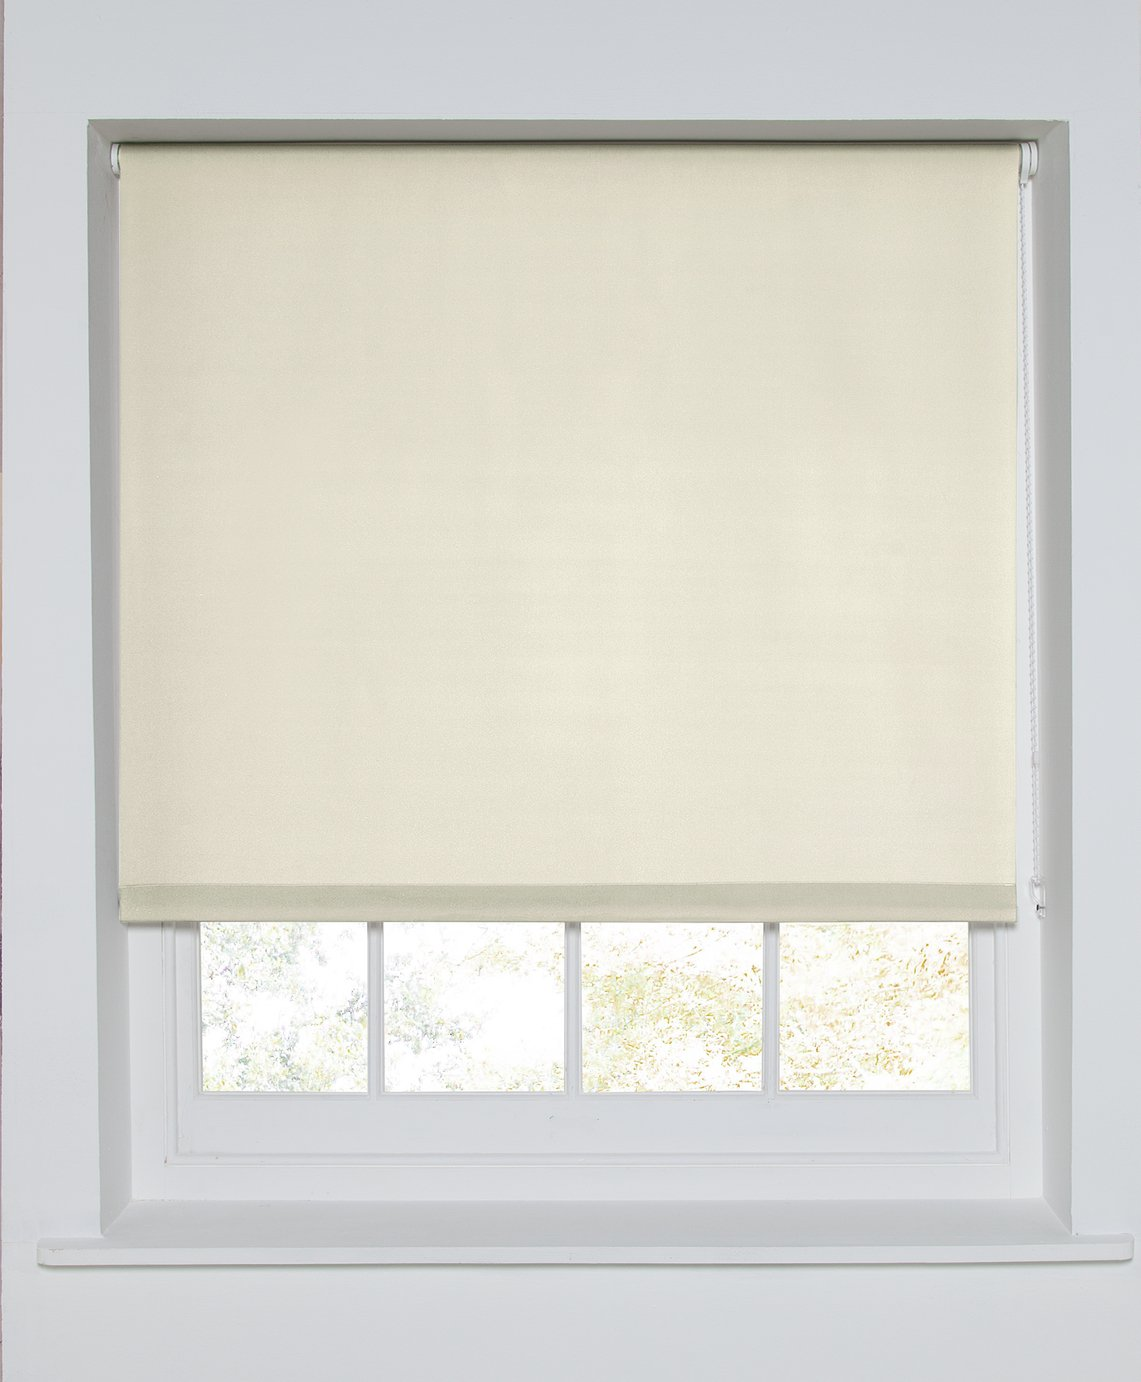 Buy Argos Home Blackout Roller Blind 5ft Cream Blinds Argos